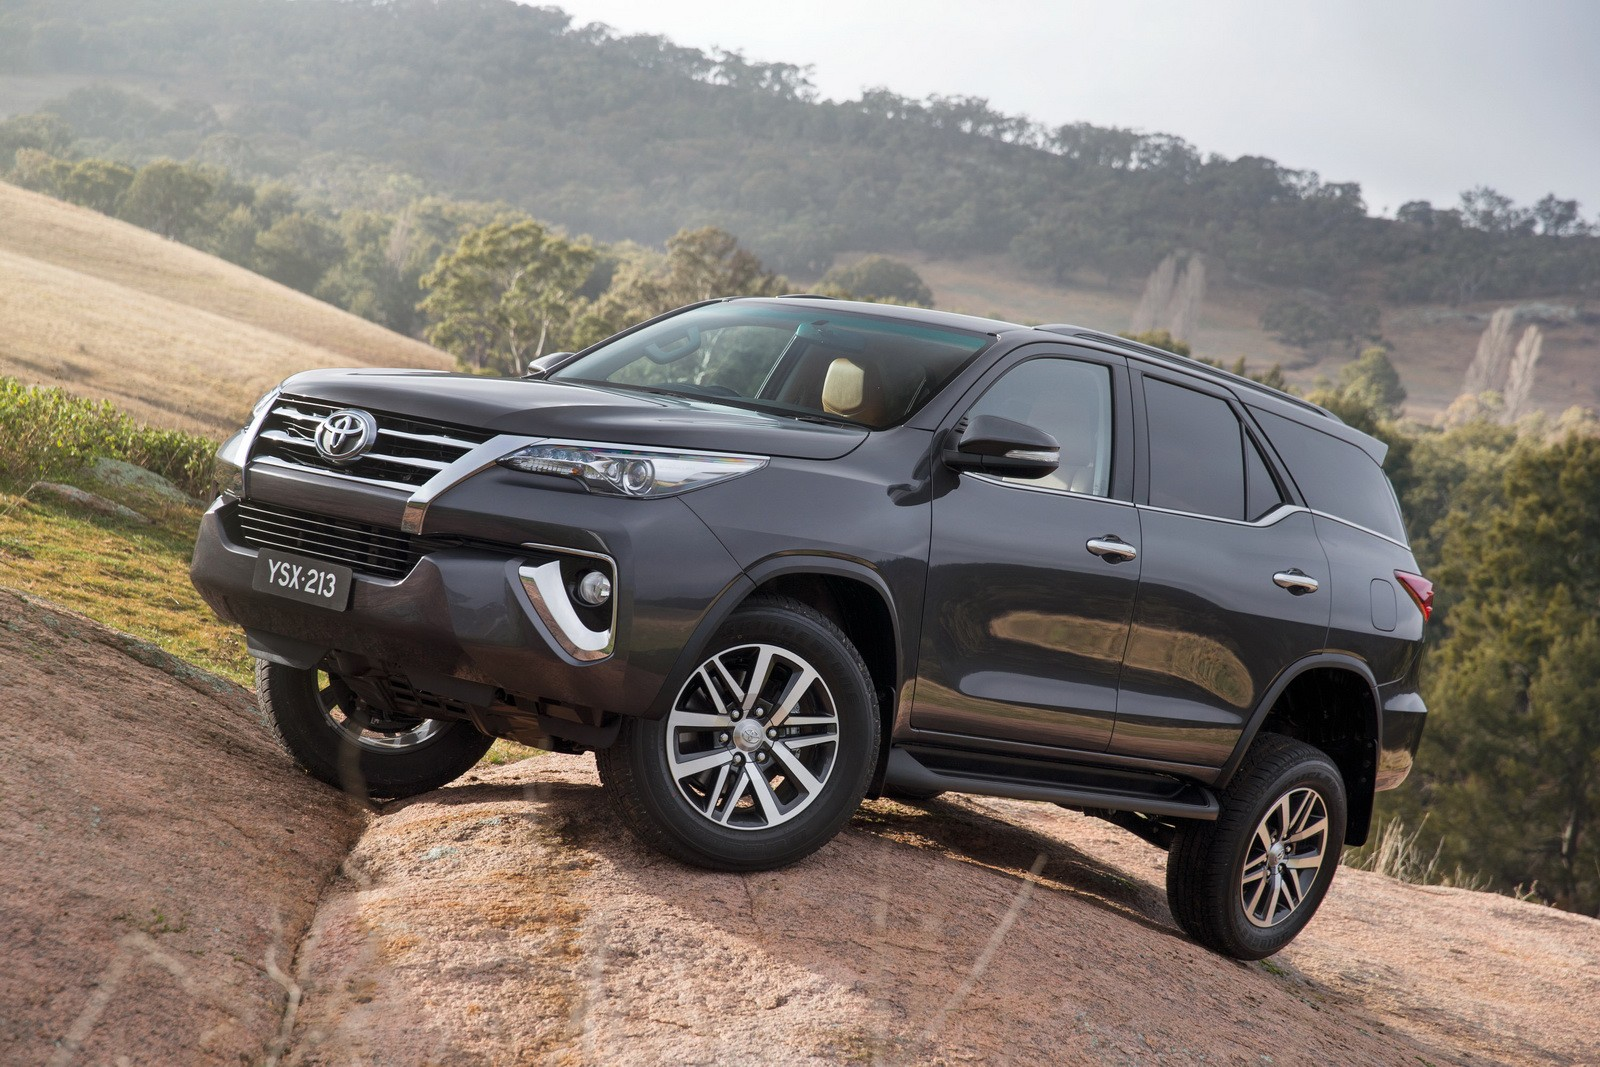 Highlander Vs 4Runner >> 2016 Toyota Fortuner Debuts in Australia and Thailand with 177 HP 2.8 Mill - autoevolution